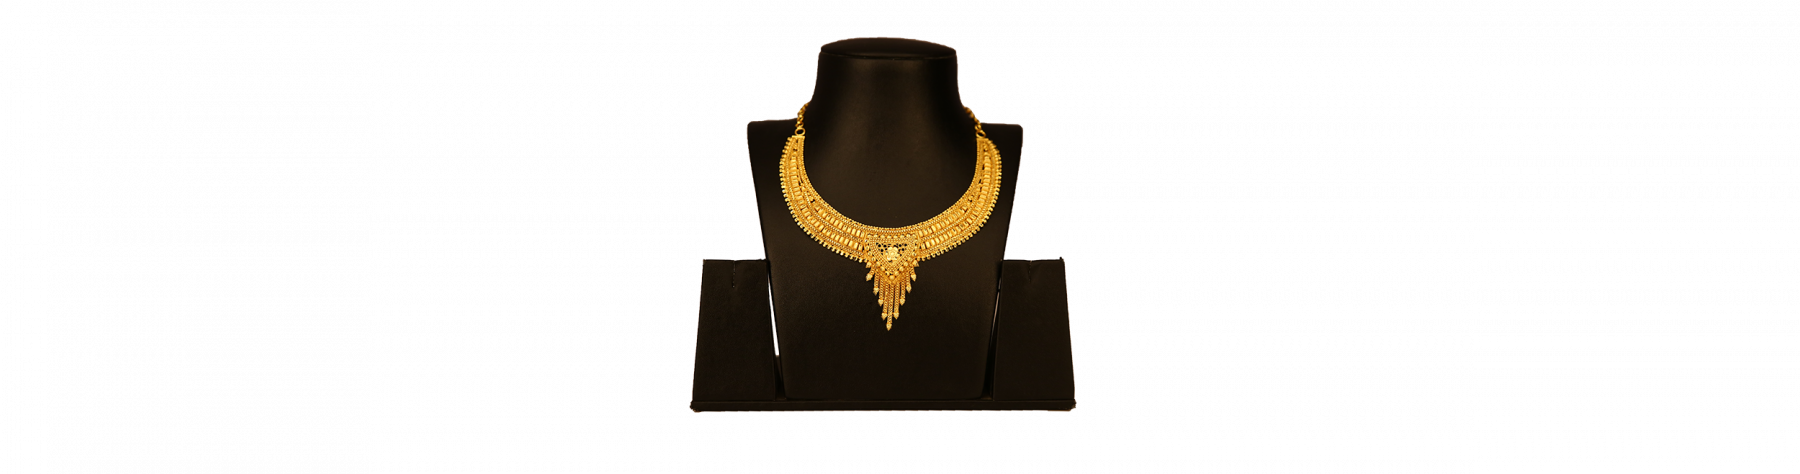 Drop pattern jewellery collections. Necklace clipart gold traditional